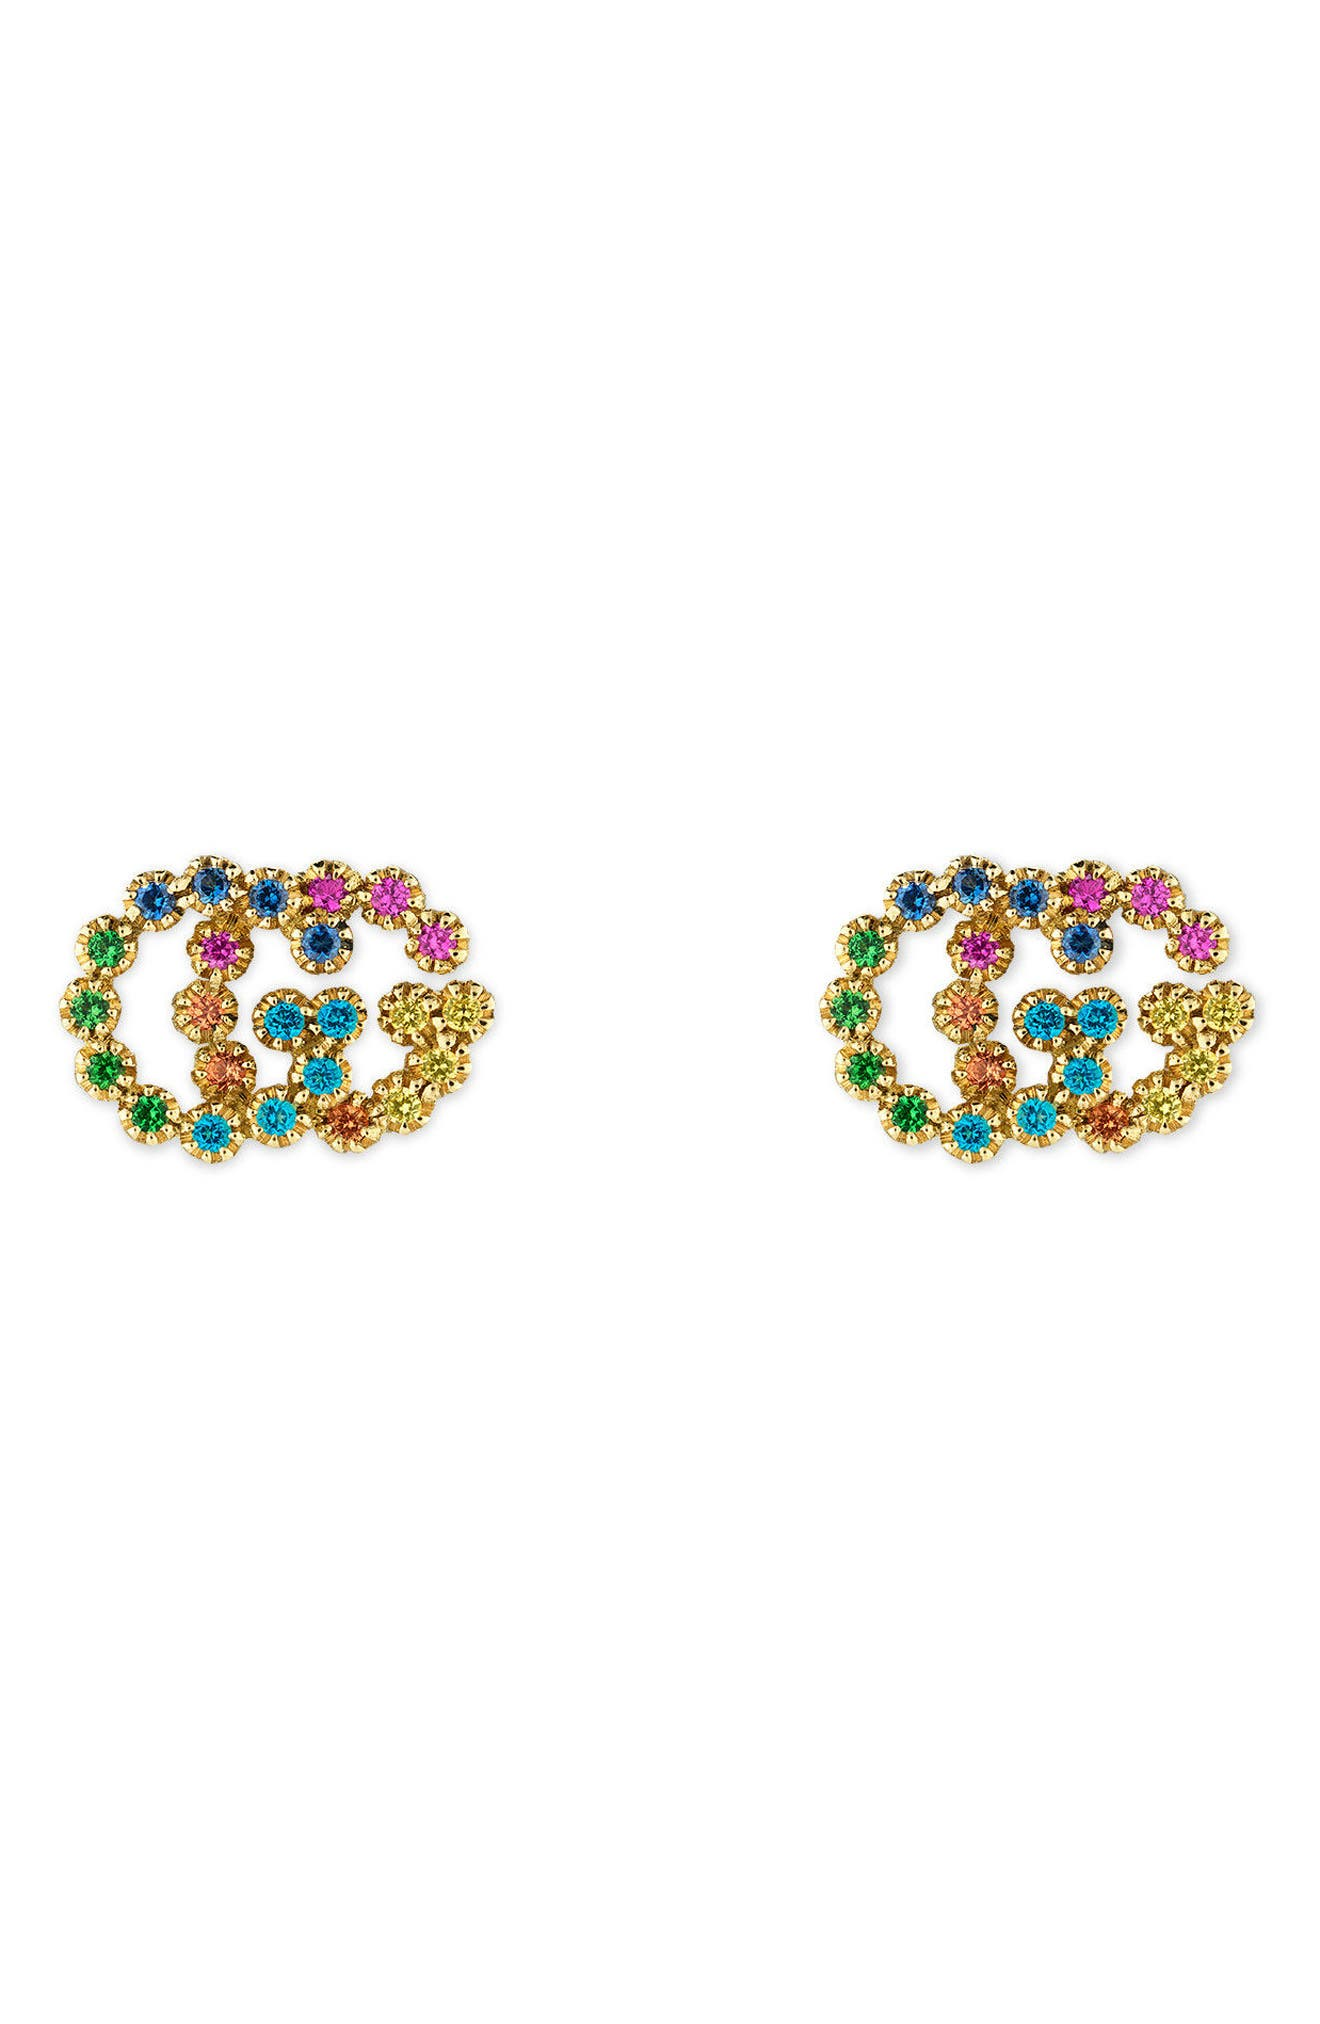 Double-G Multistone Stud Earrings,                             Main thumbnail 1, color,                             Yellow Gold